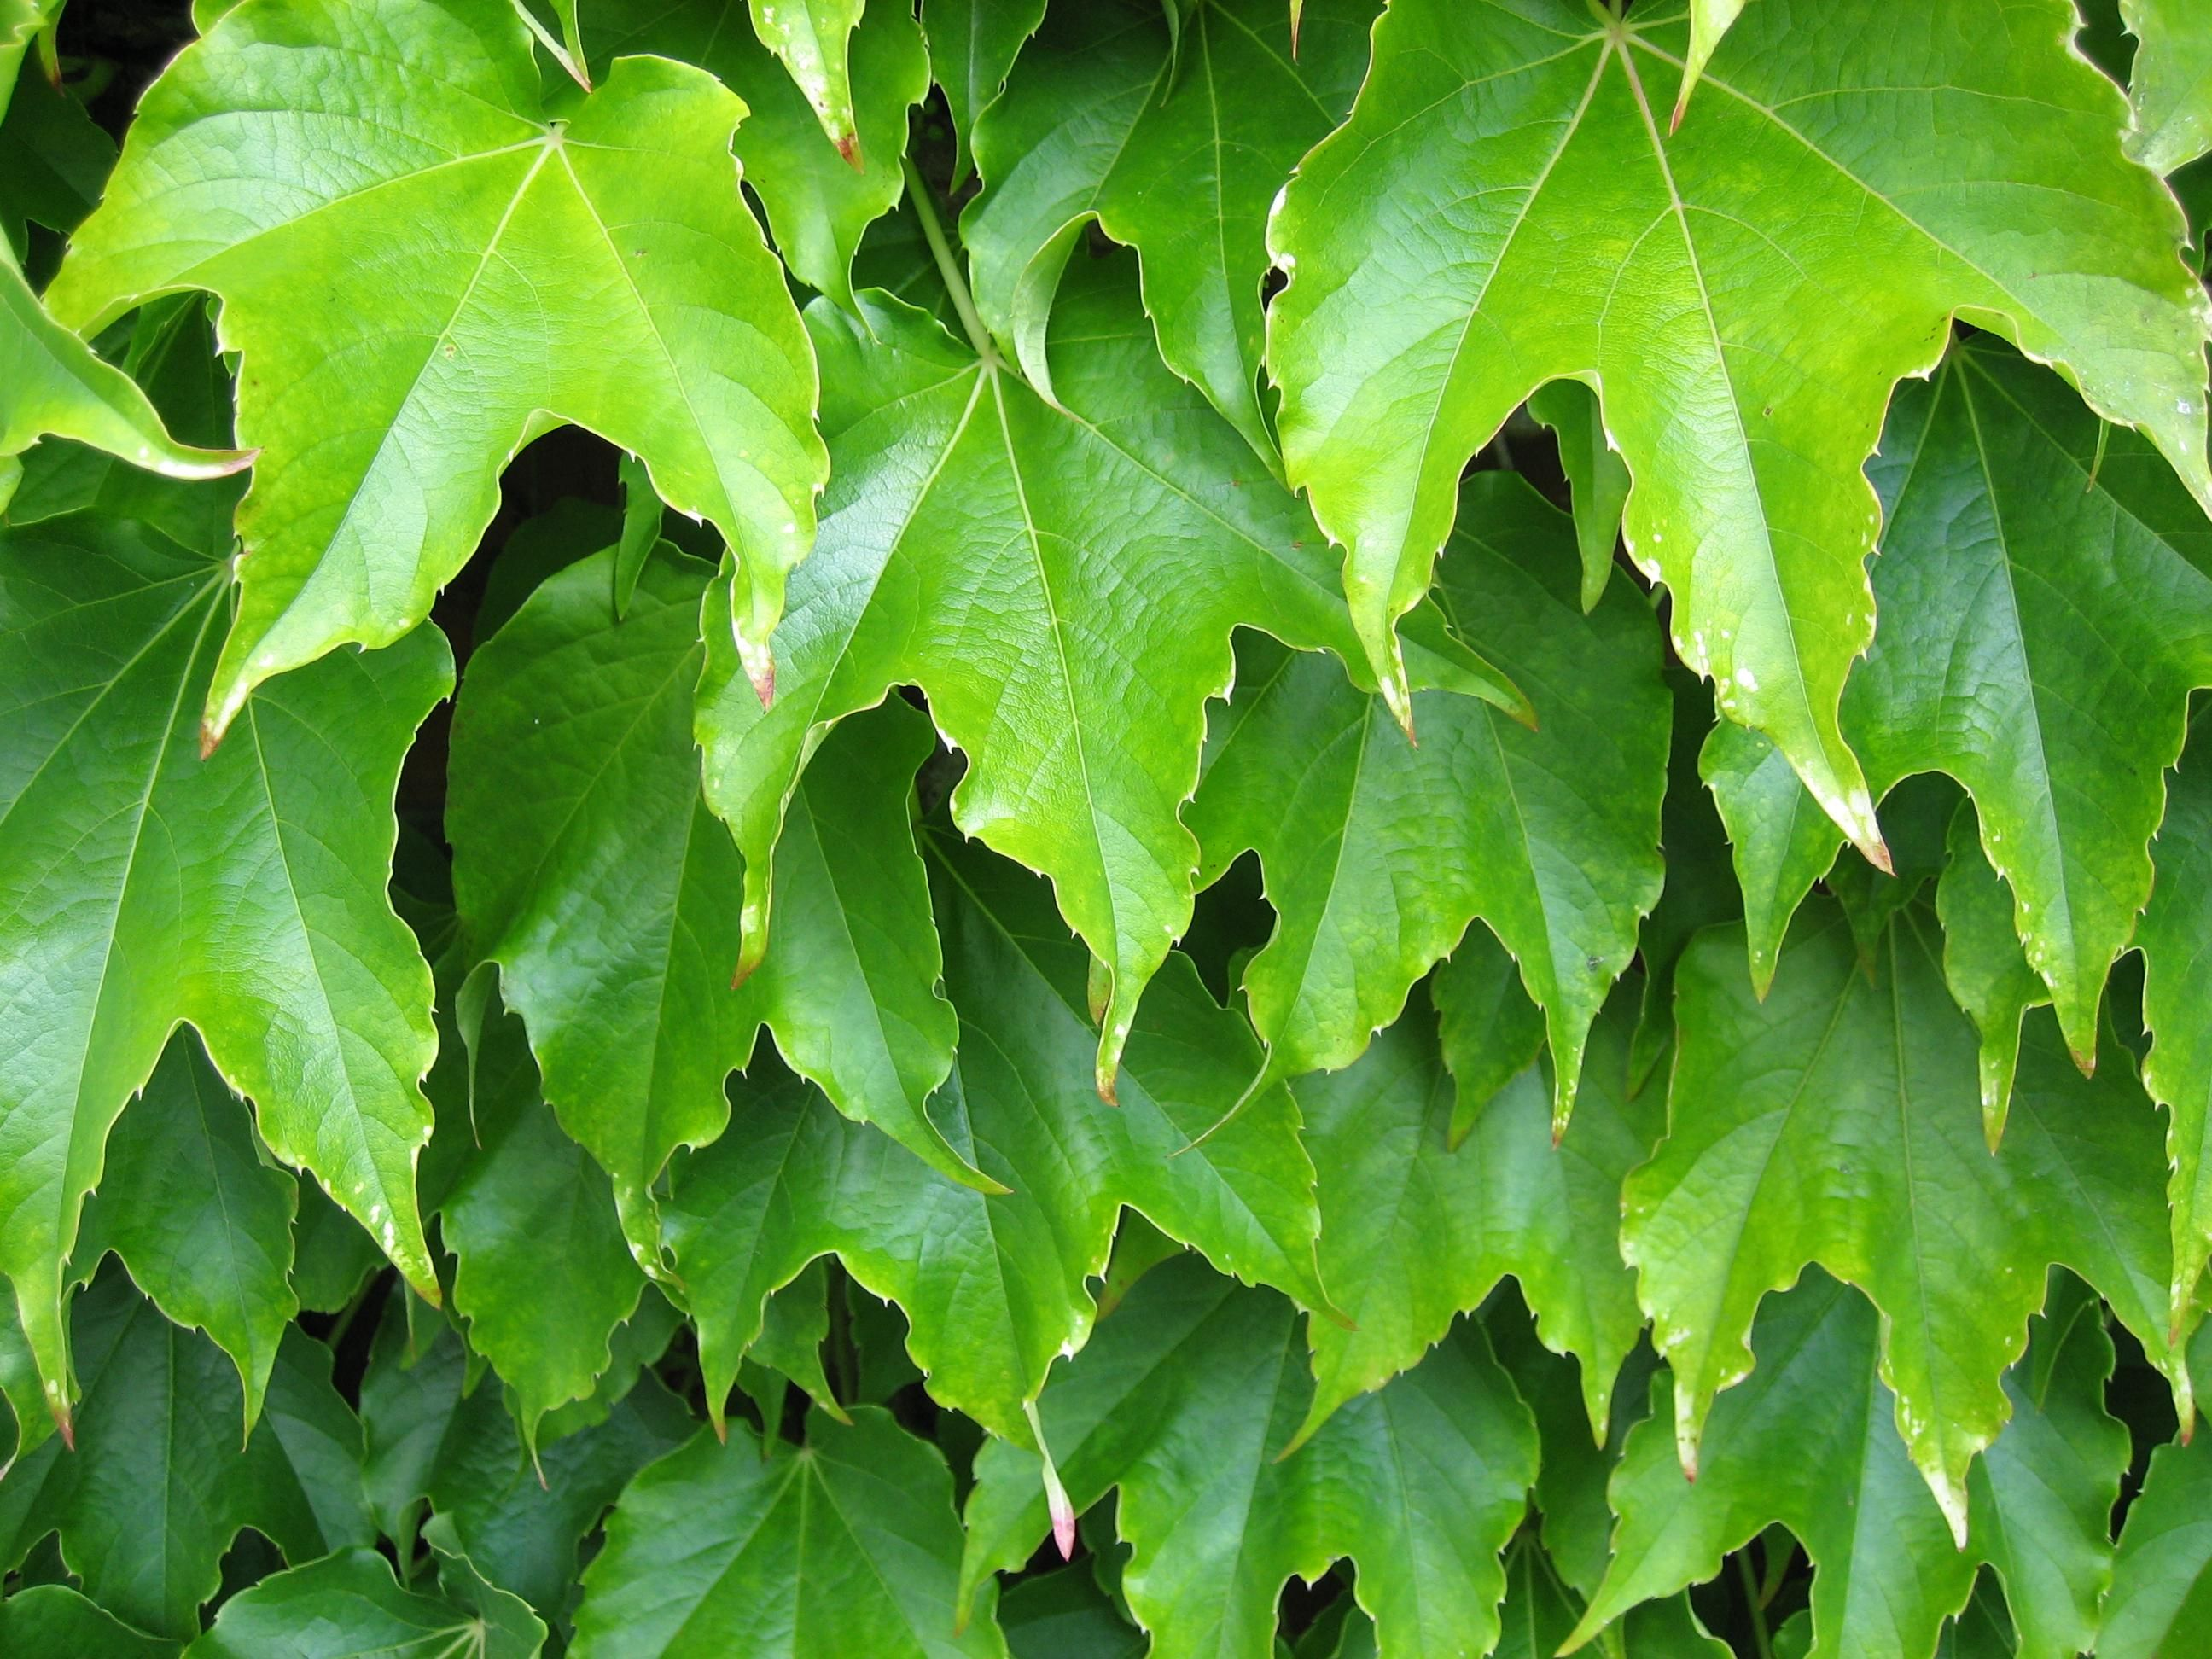 Leaves of plants - photo#4